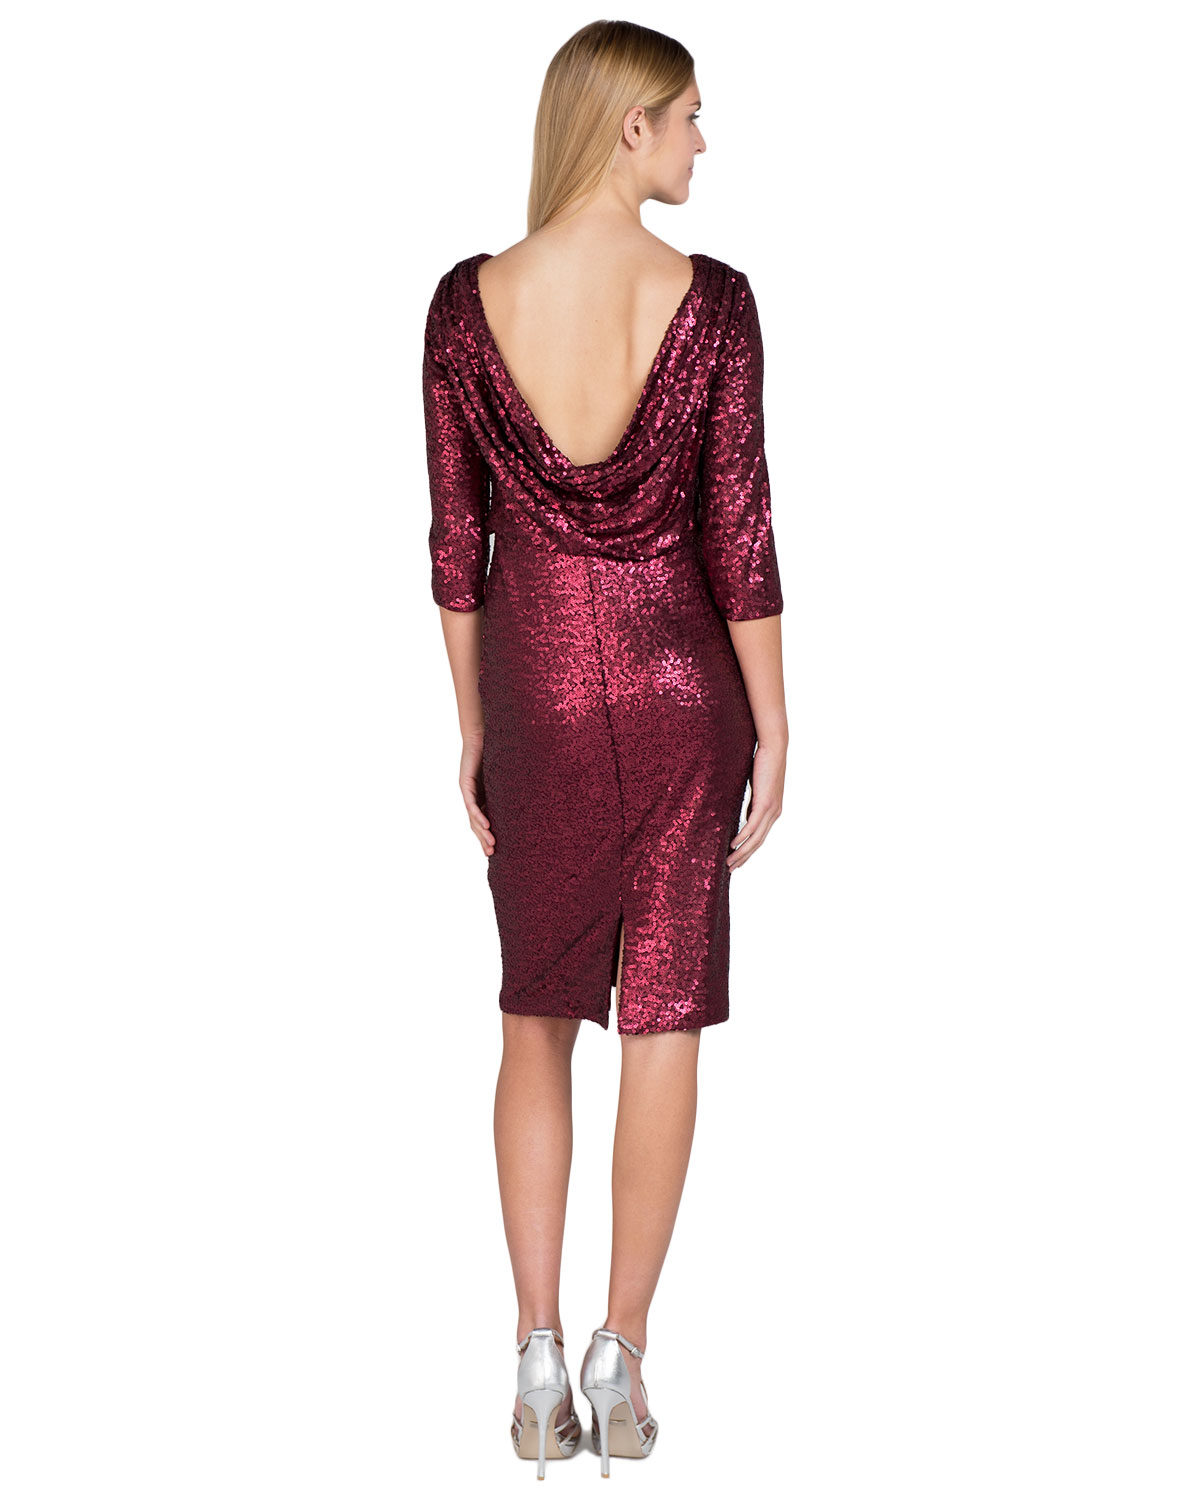 Badgley mischka Cowl-Back Cocktail Dress in Purple